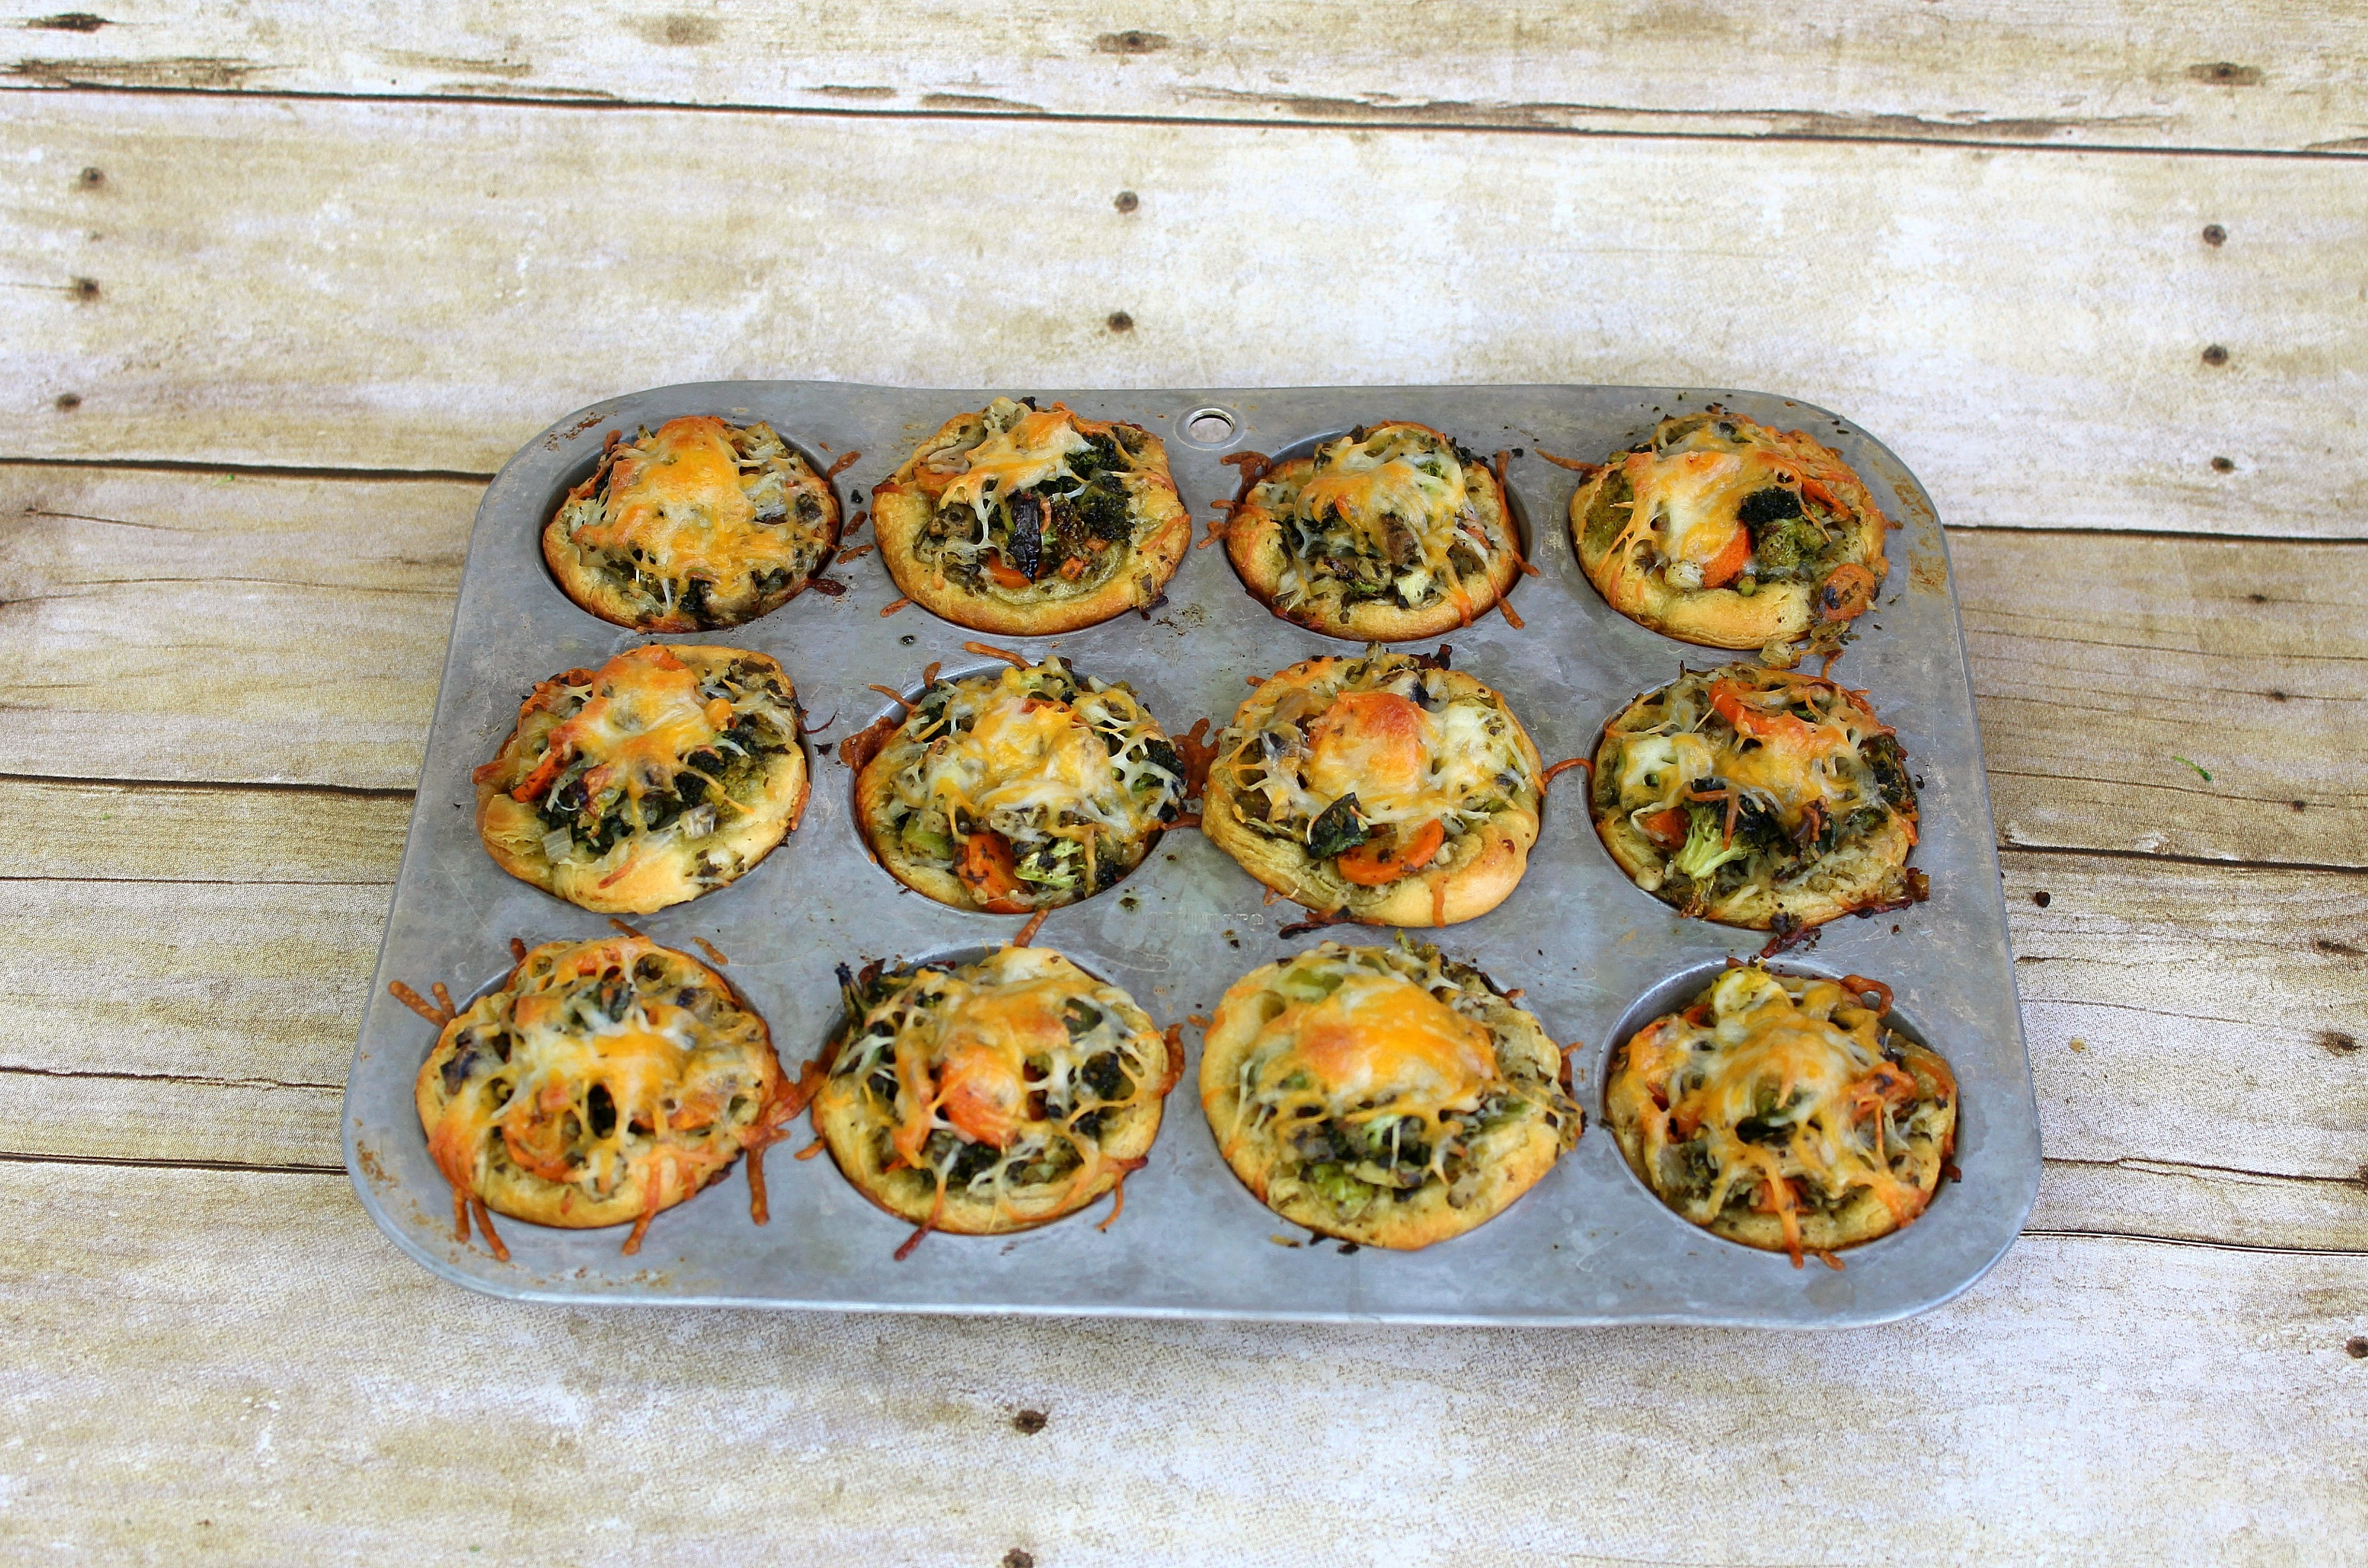 These roasted veggie cupcakes are perfect for a side dish or easy snack